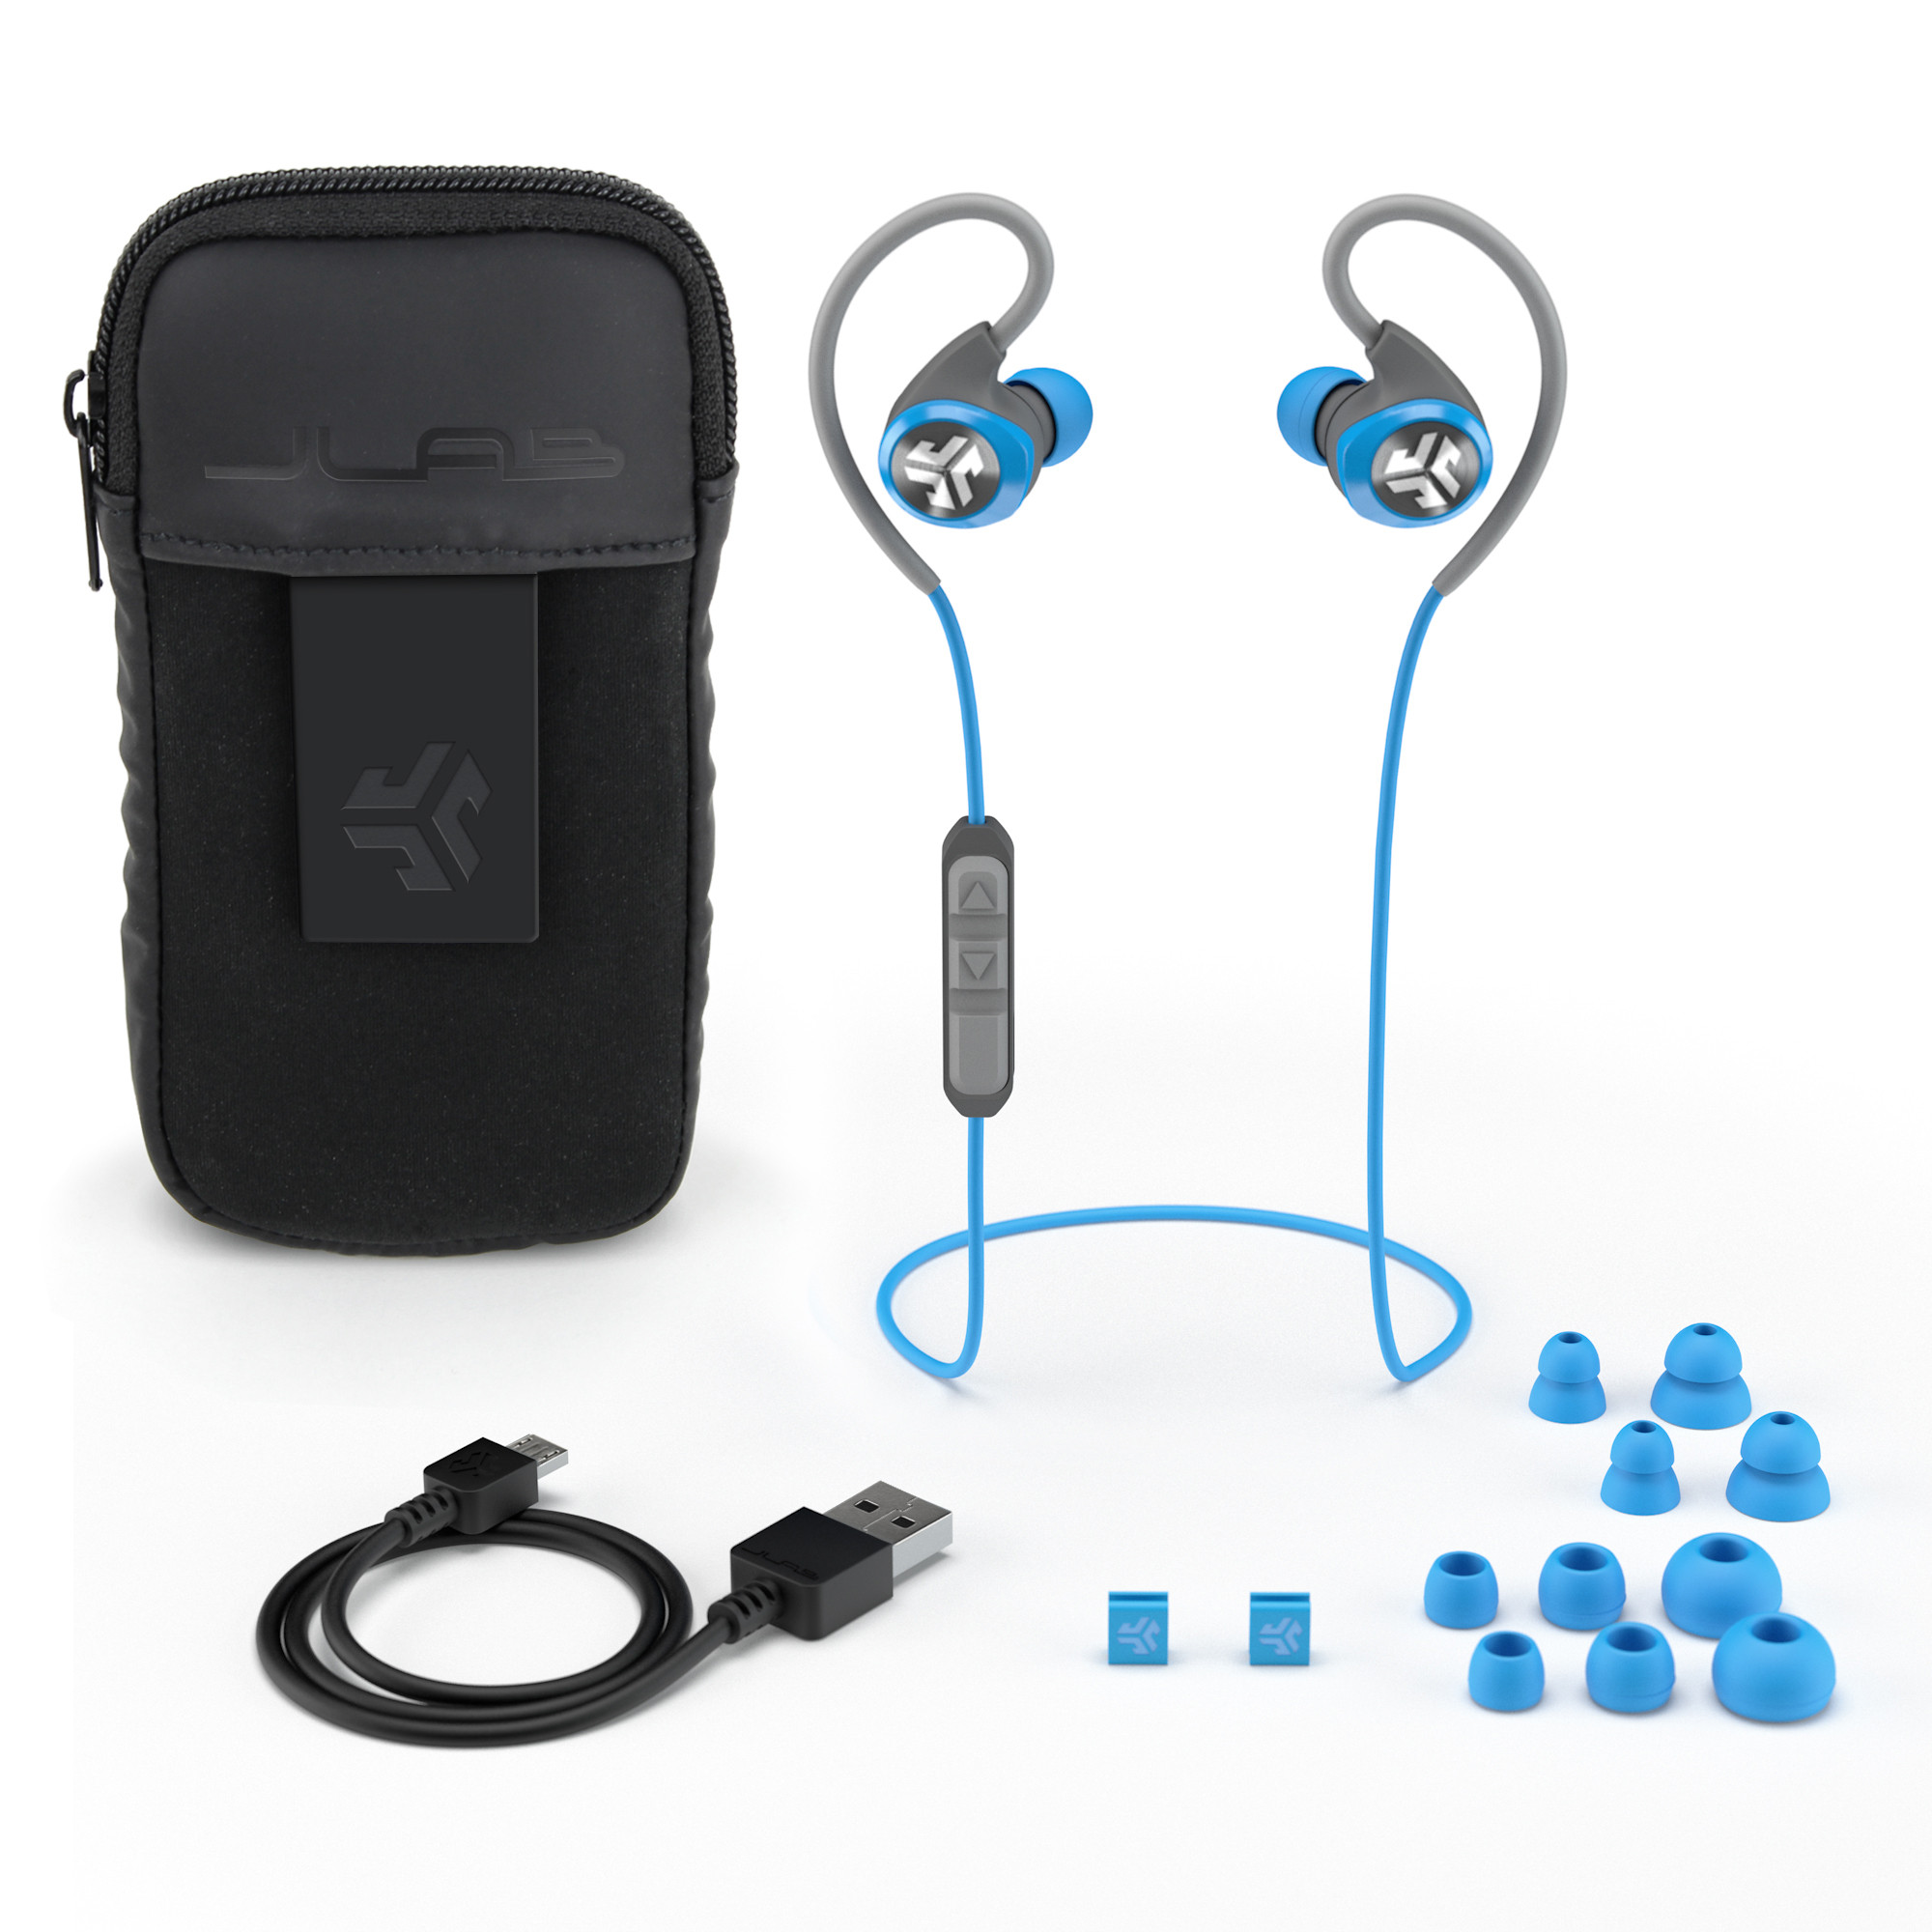 Earbuds microphone water proof - bluetooth earbuds with microphone